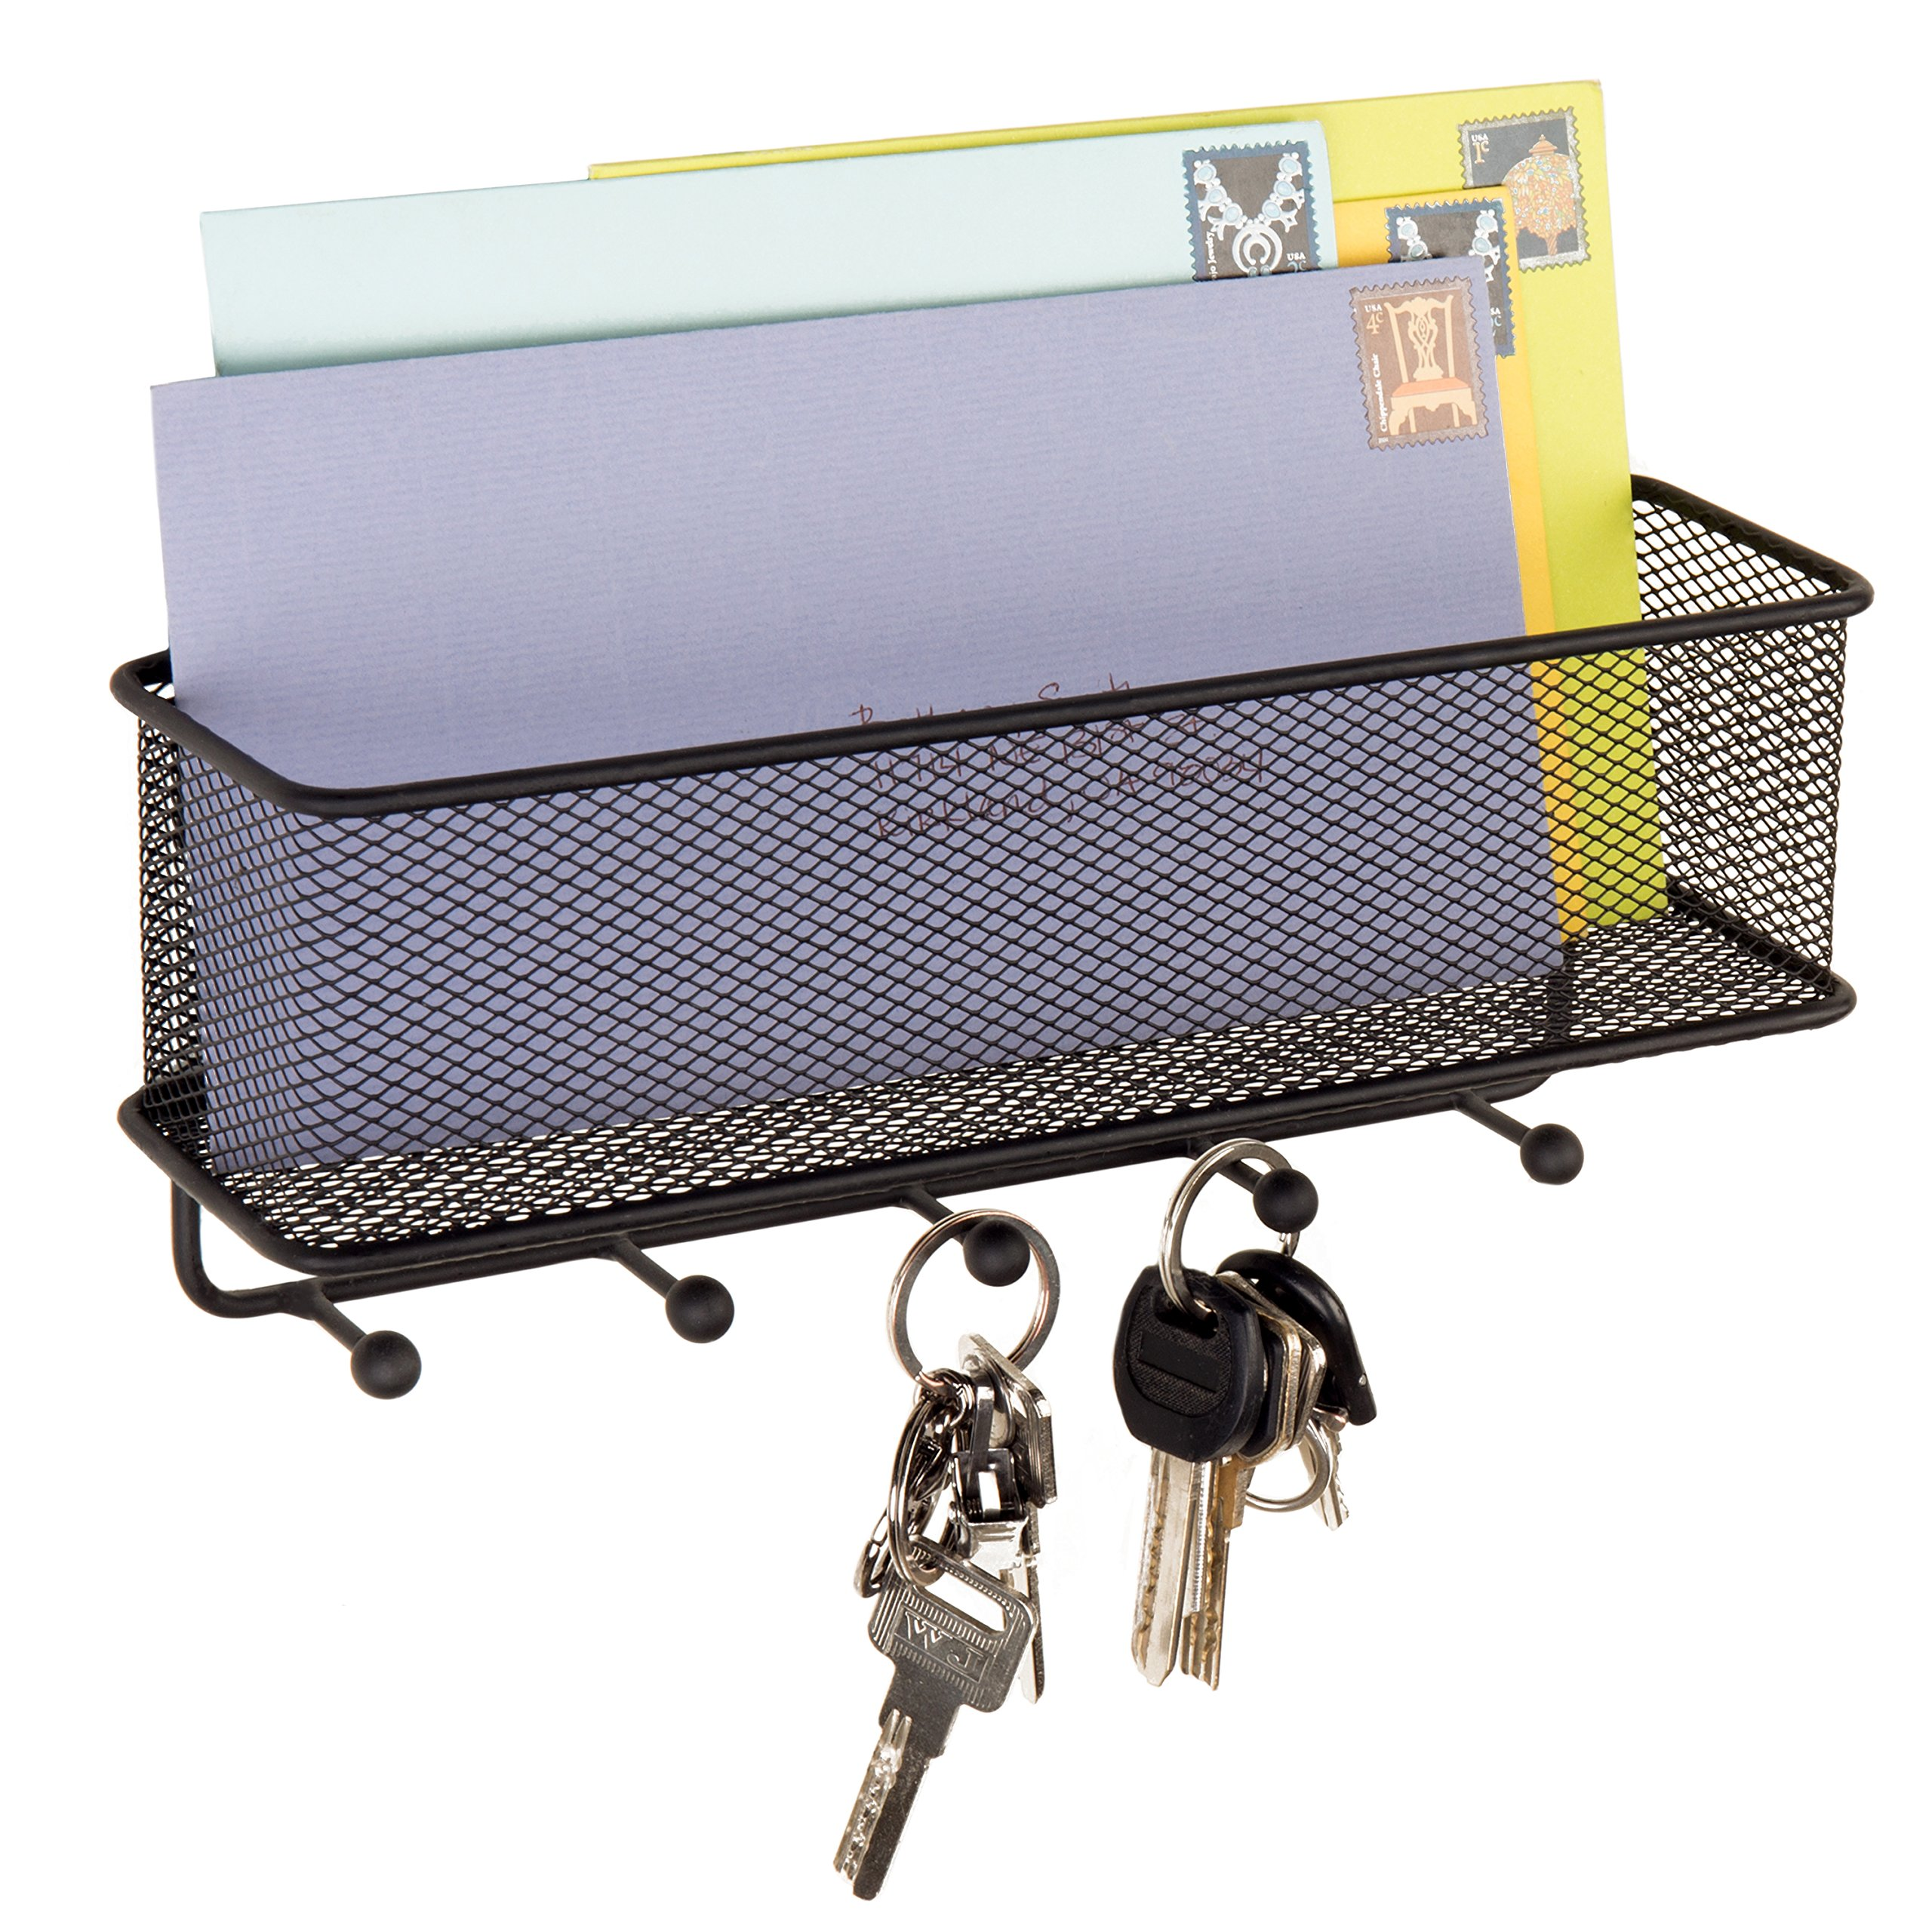 MyGift Wall-Mounted Metal Mesh Mail Holder Basket with 5 Key Hooks